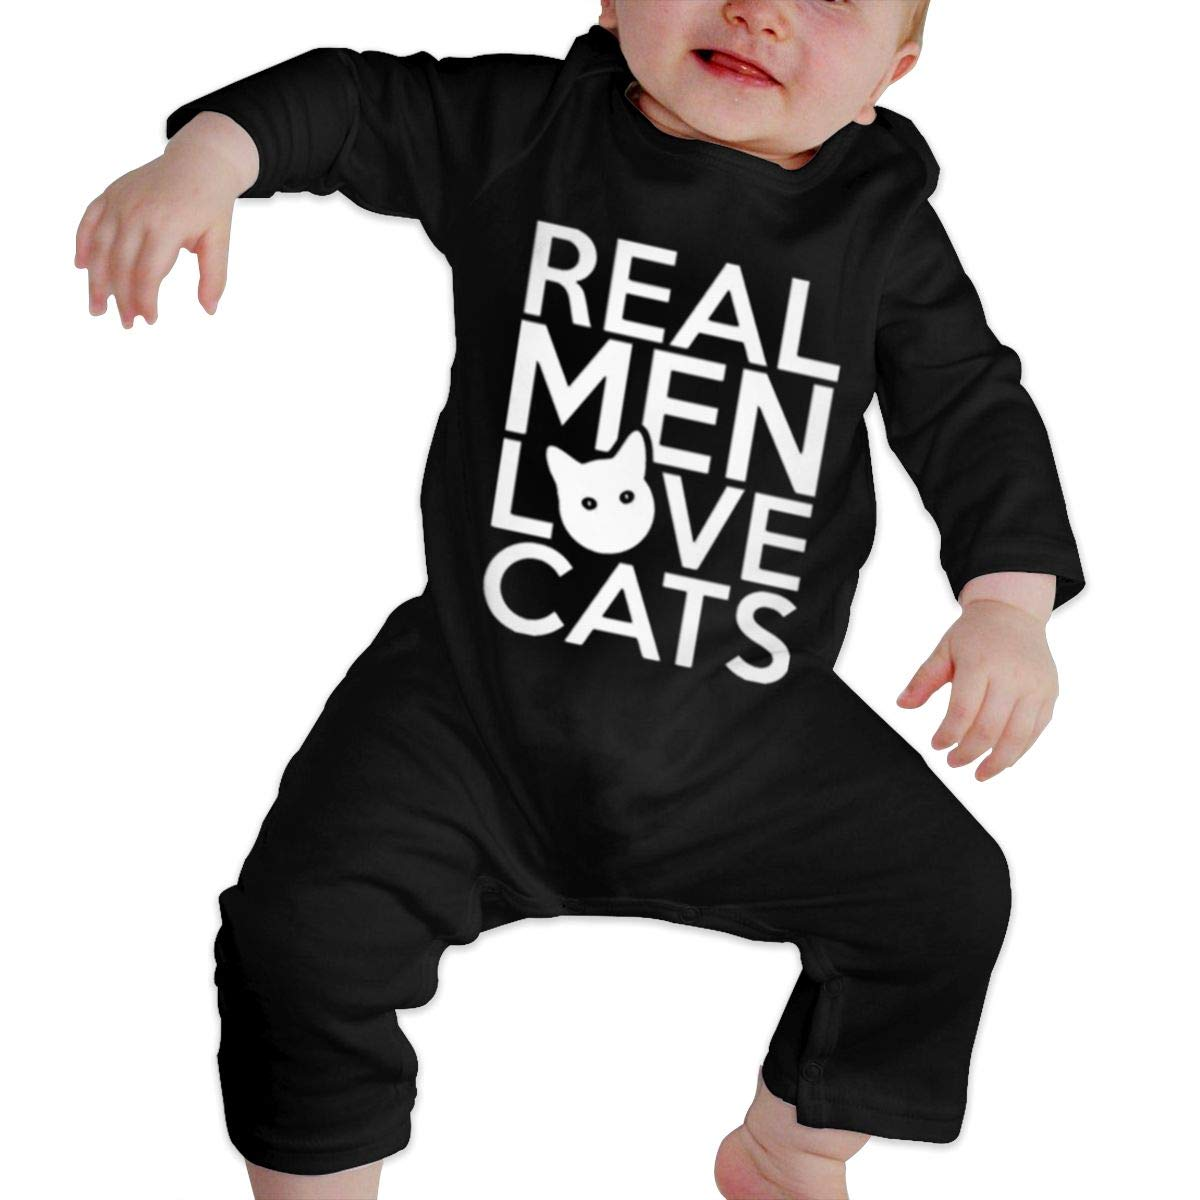 Real Men Love Cats Unisex Long Sleeve Baby Gown Baby Bodysuit Unionsuit Footed Pajamas Romper Jumpsuit